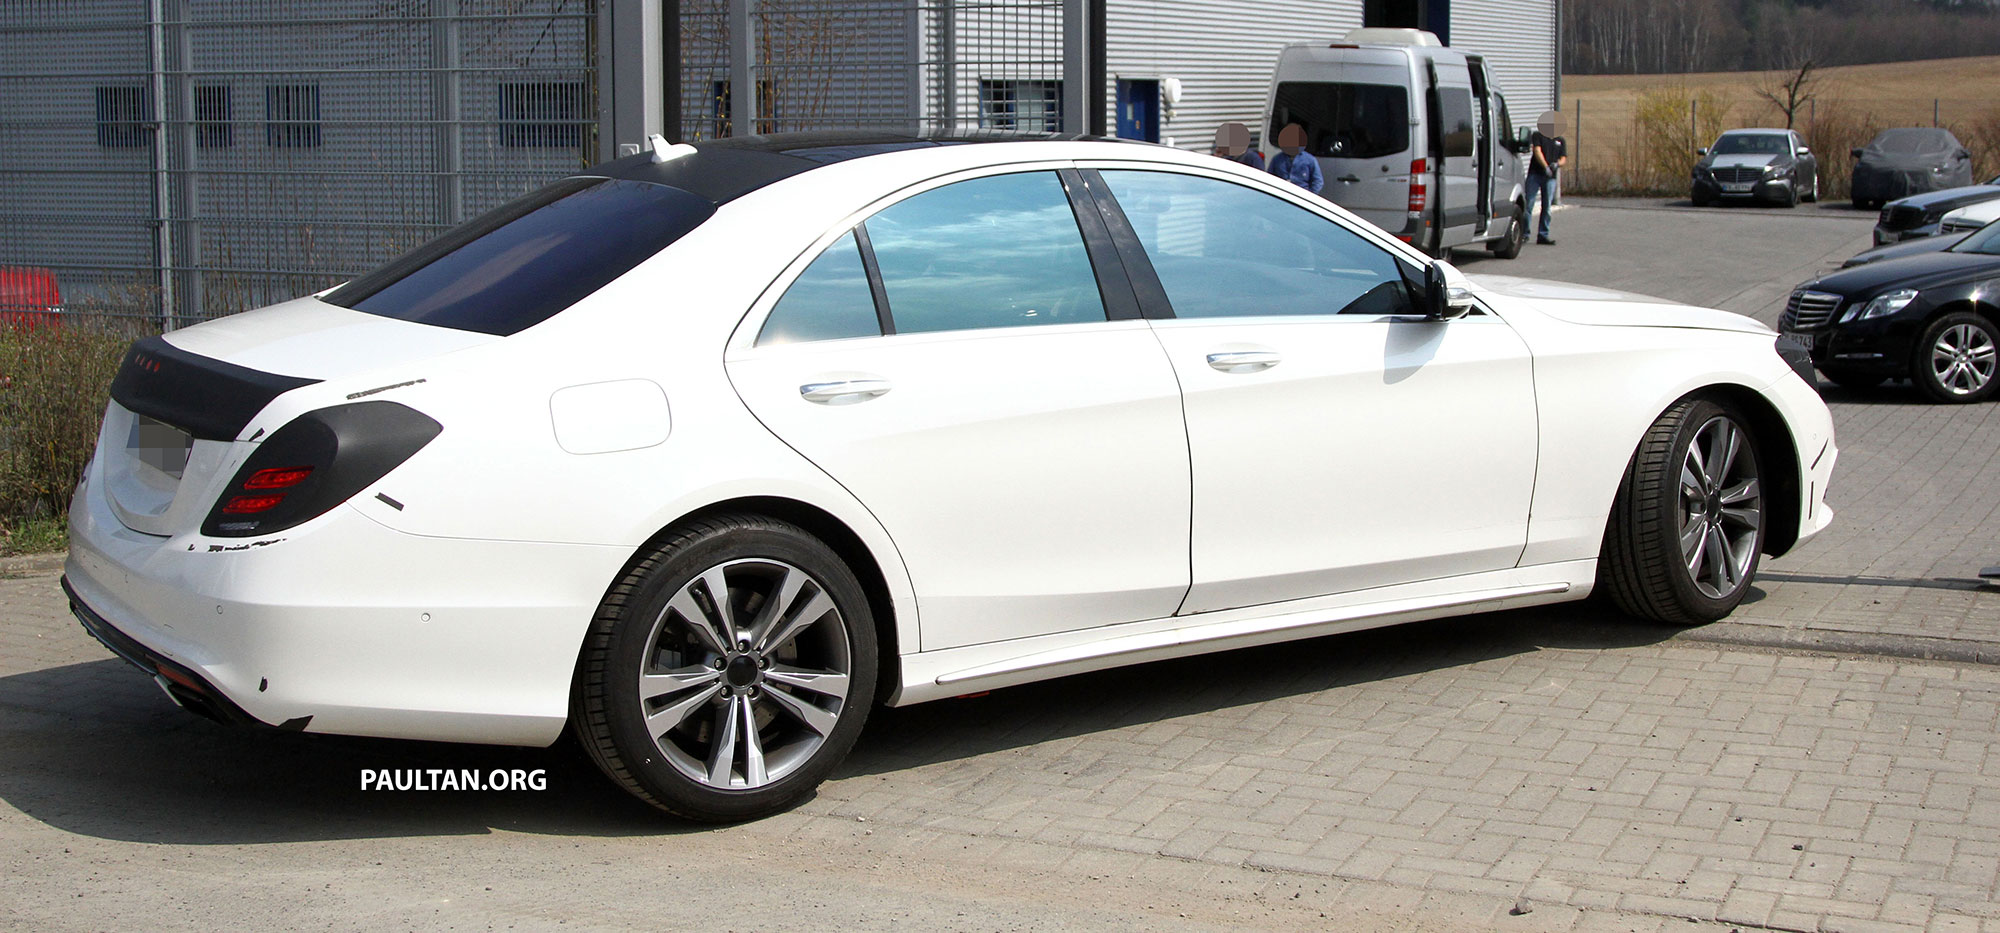 W222 Merc S Class Sighted Again This Time In White Paul